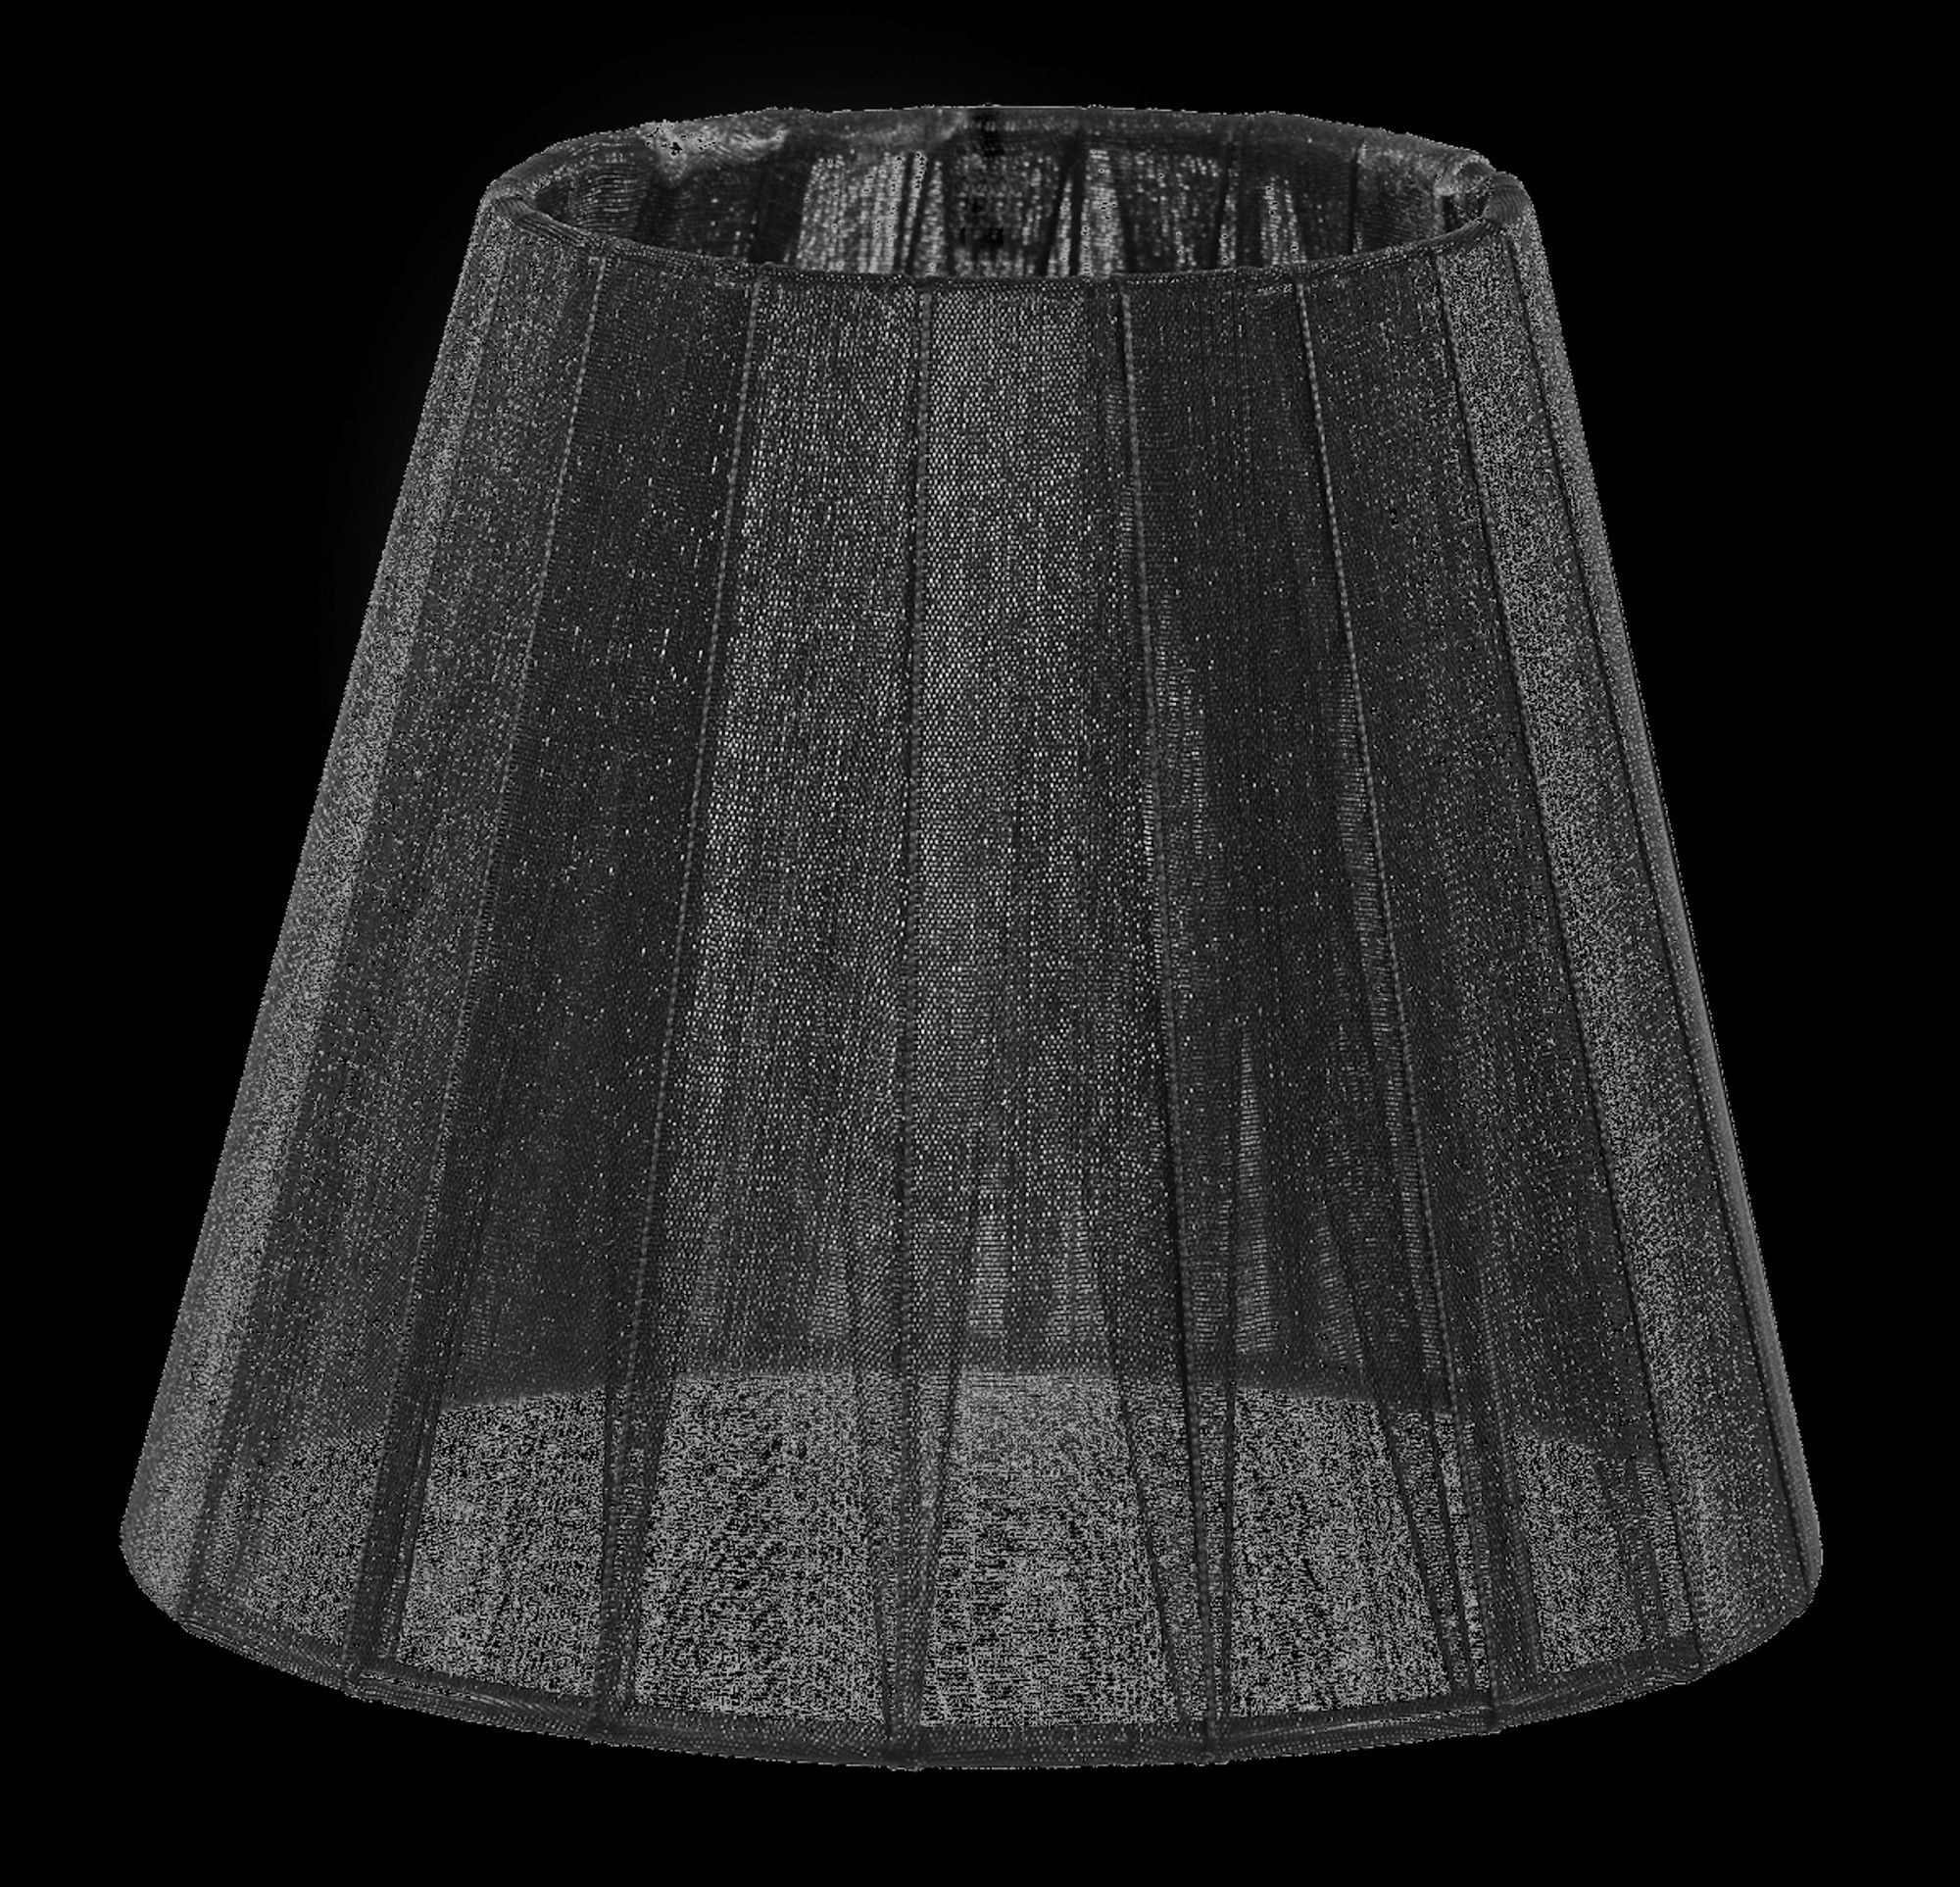 Абажур Maytoni Lampshade LMP-BLACK-130, черный, текстиль - фото 2